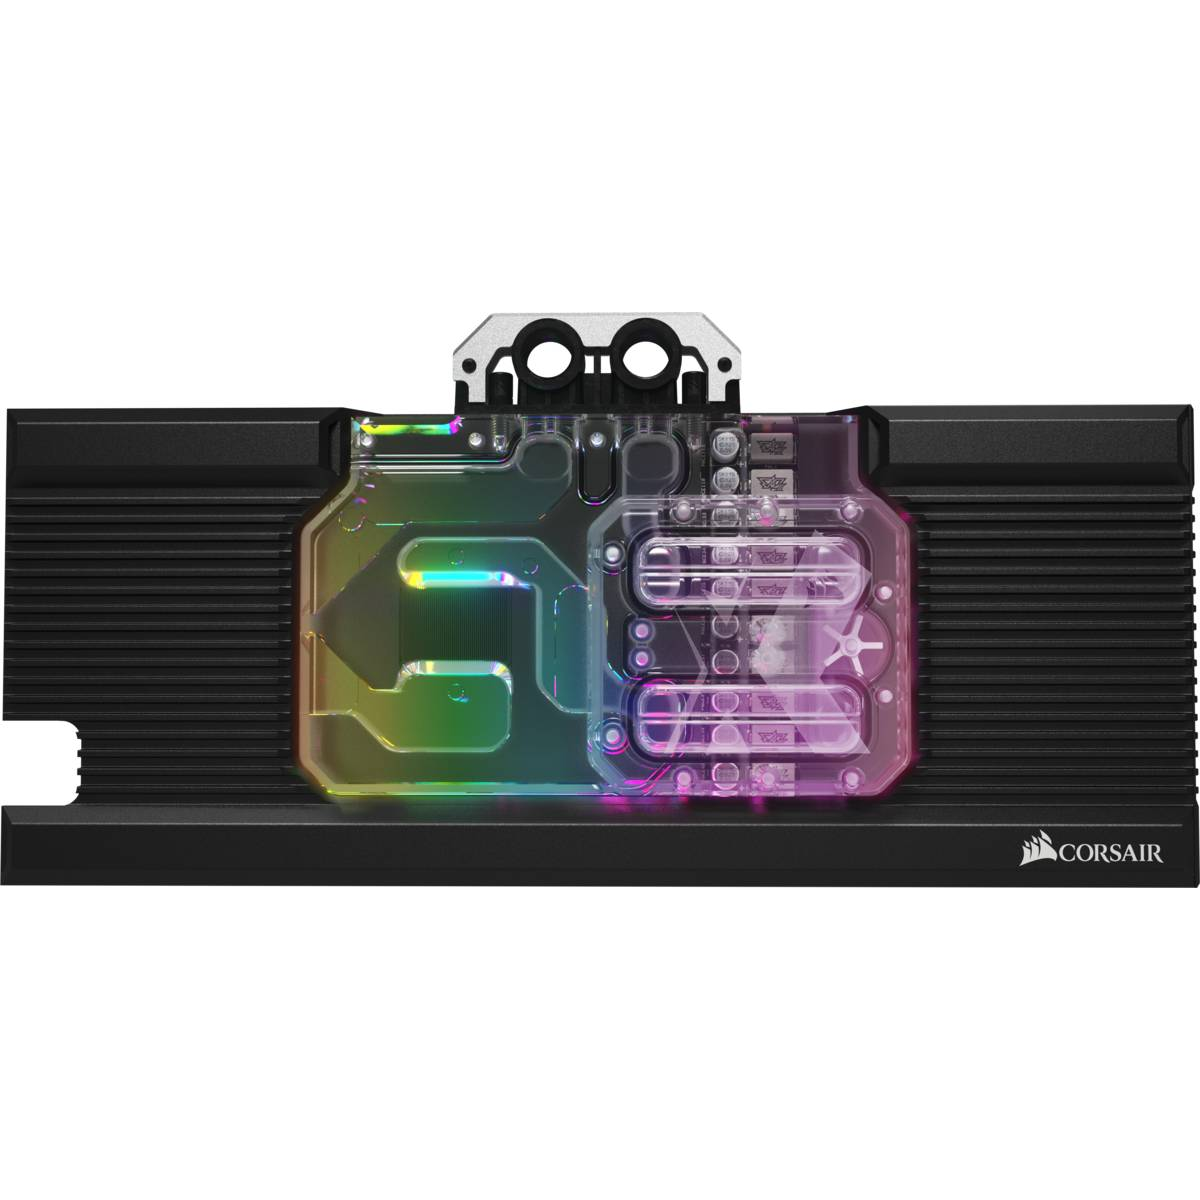 CORSAIR Hydro X Series XG7 RGB 20-SERIES GPU Water Block (2080 Ti Strix)